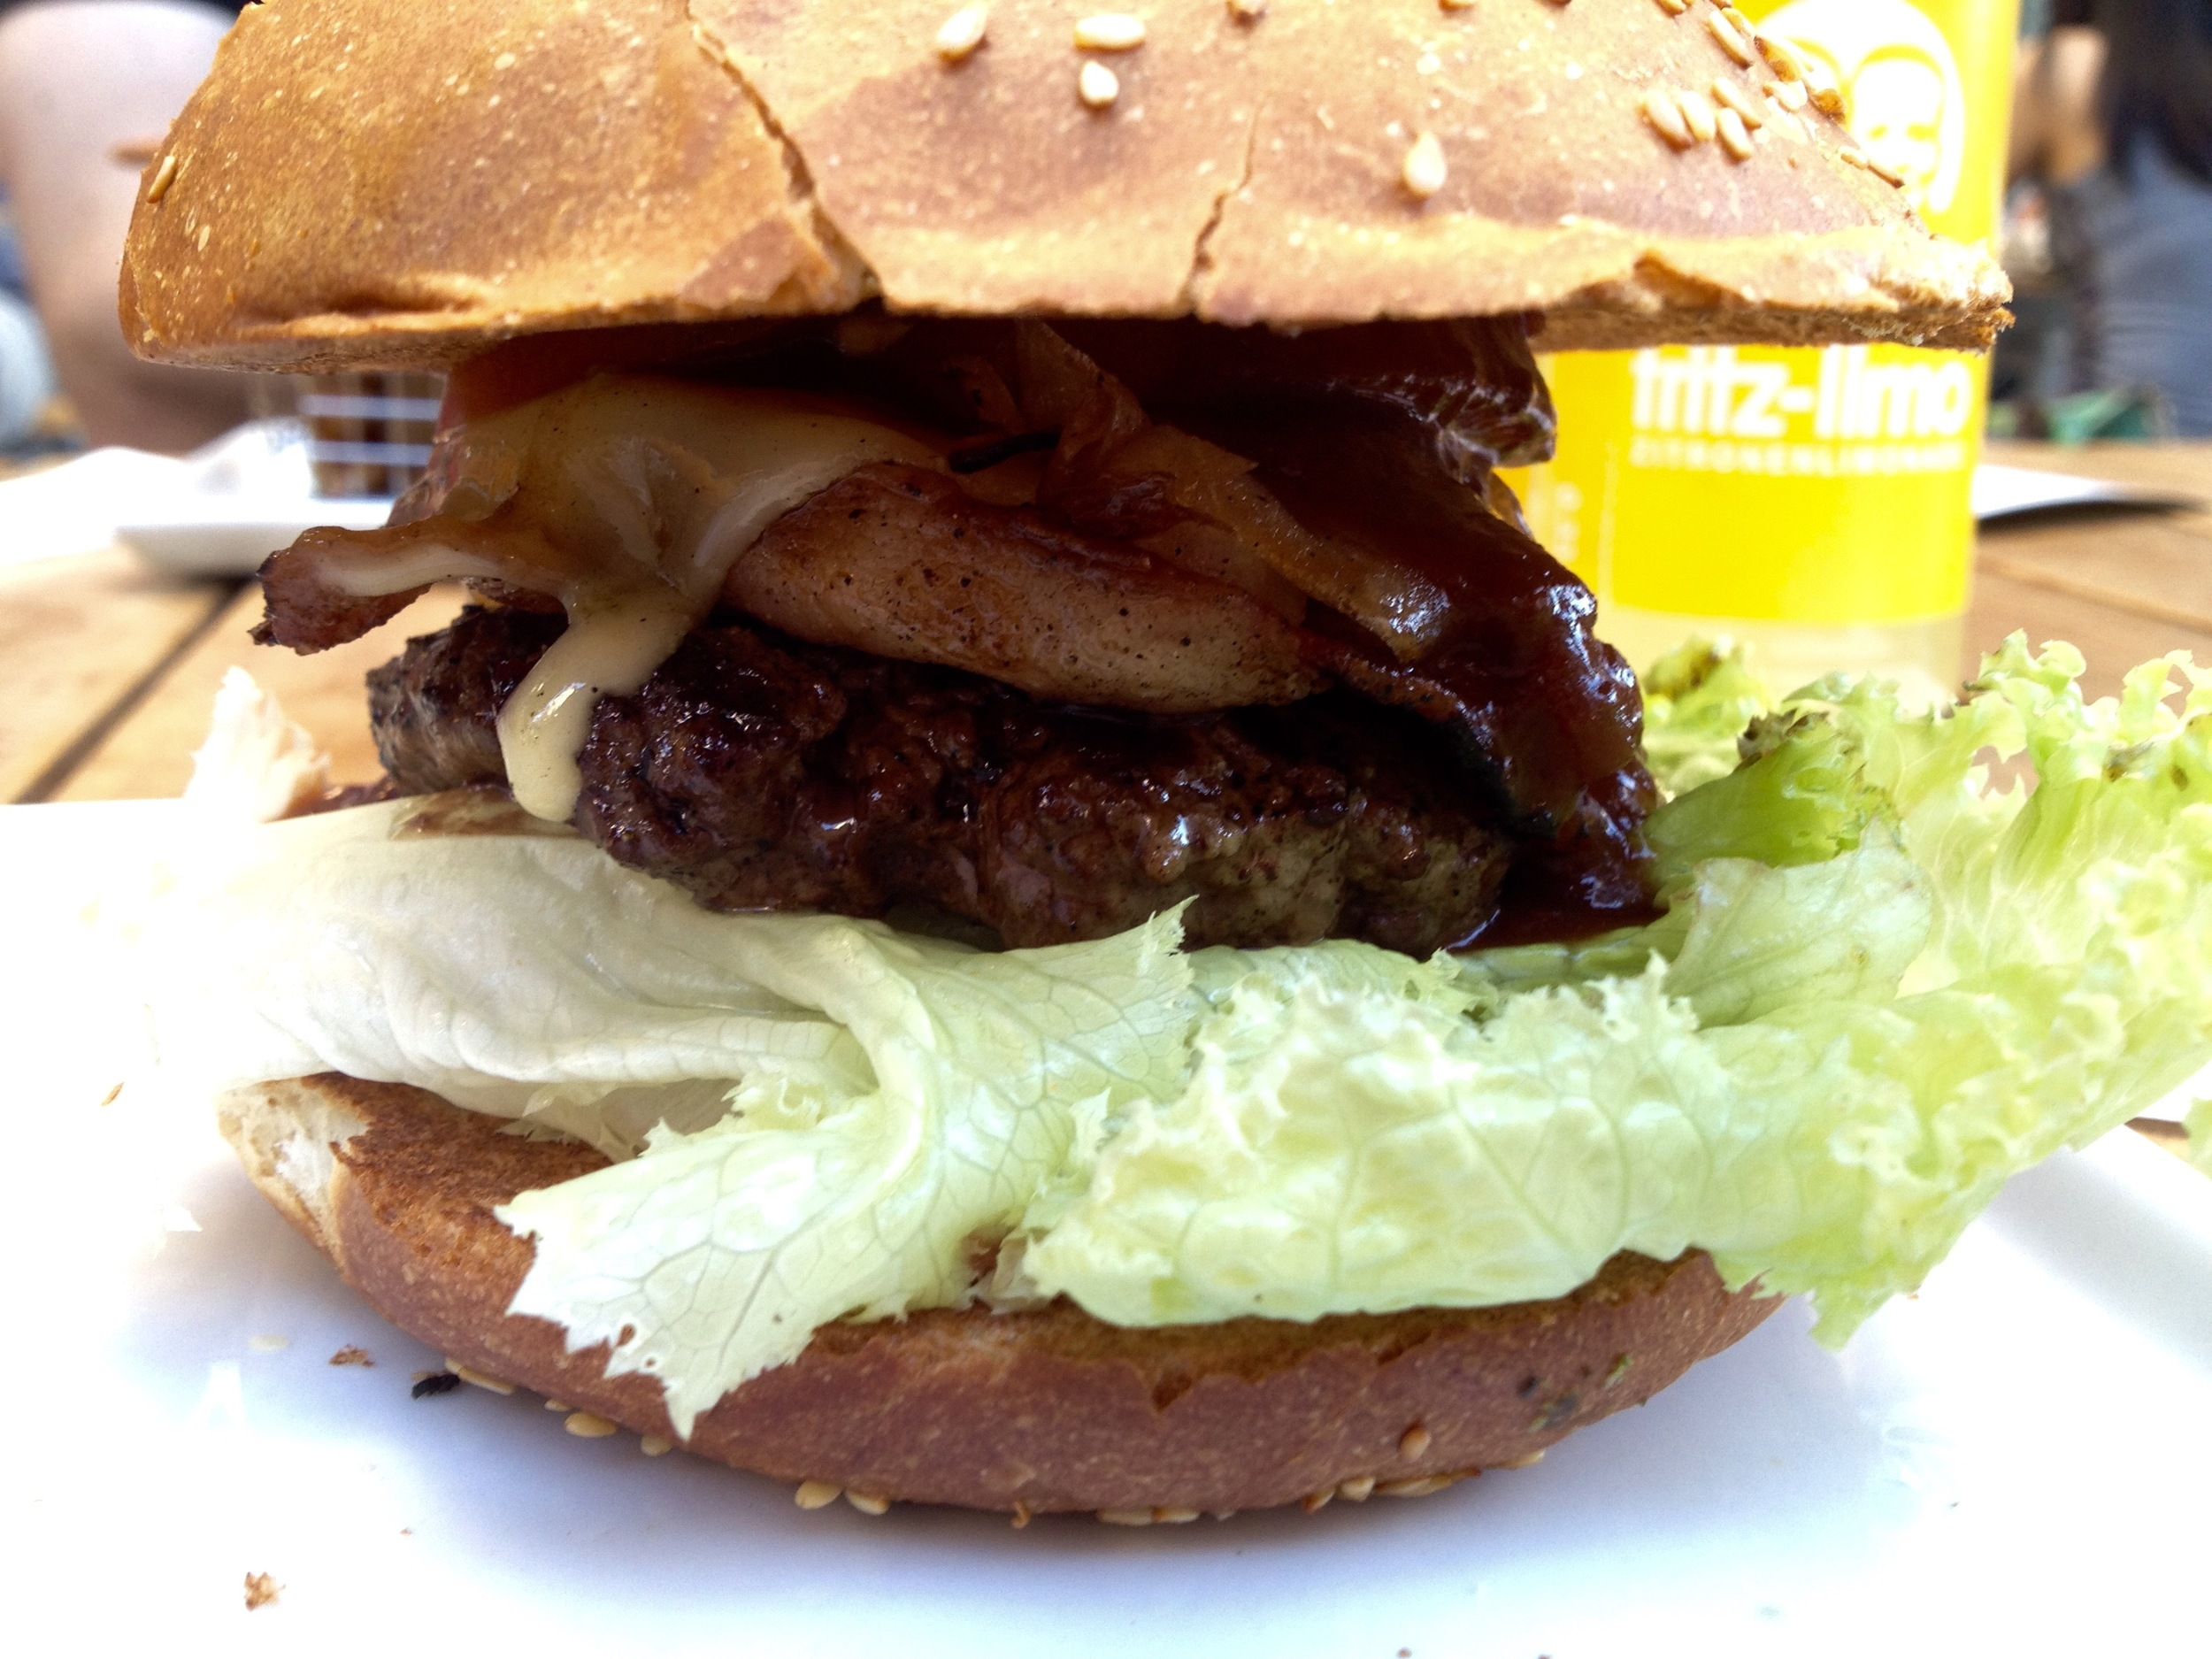 A side view of the American BBQ burger